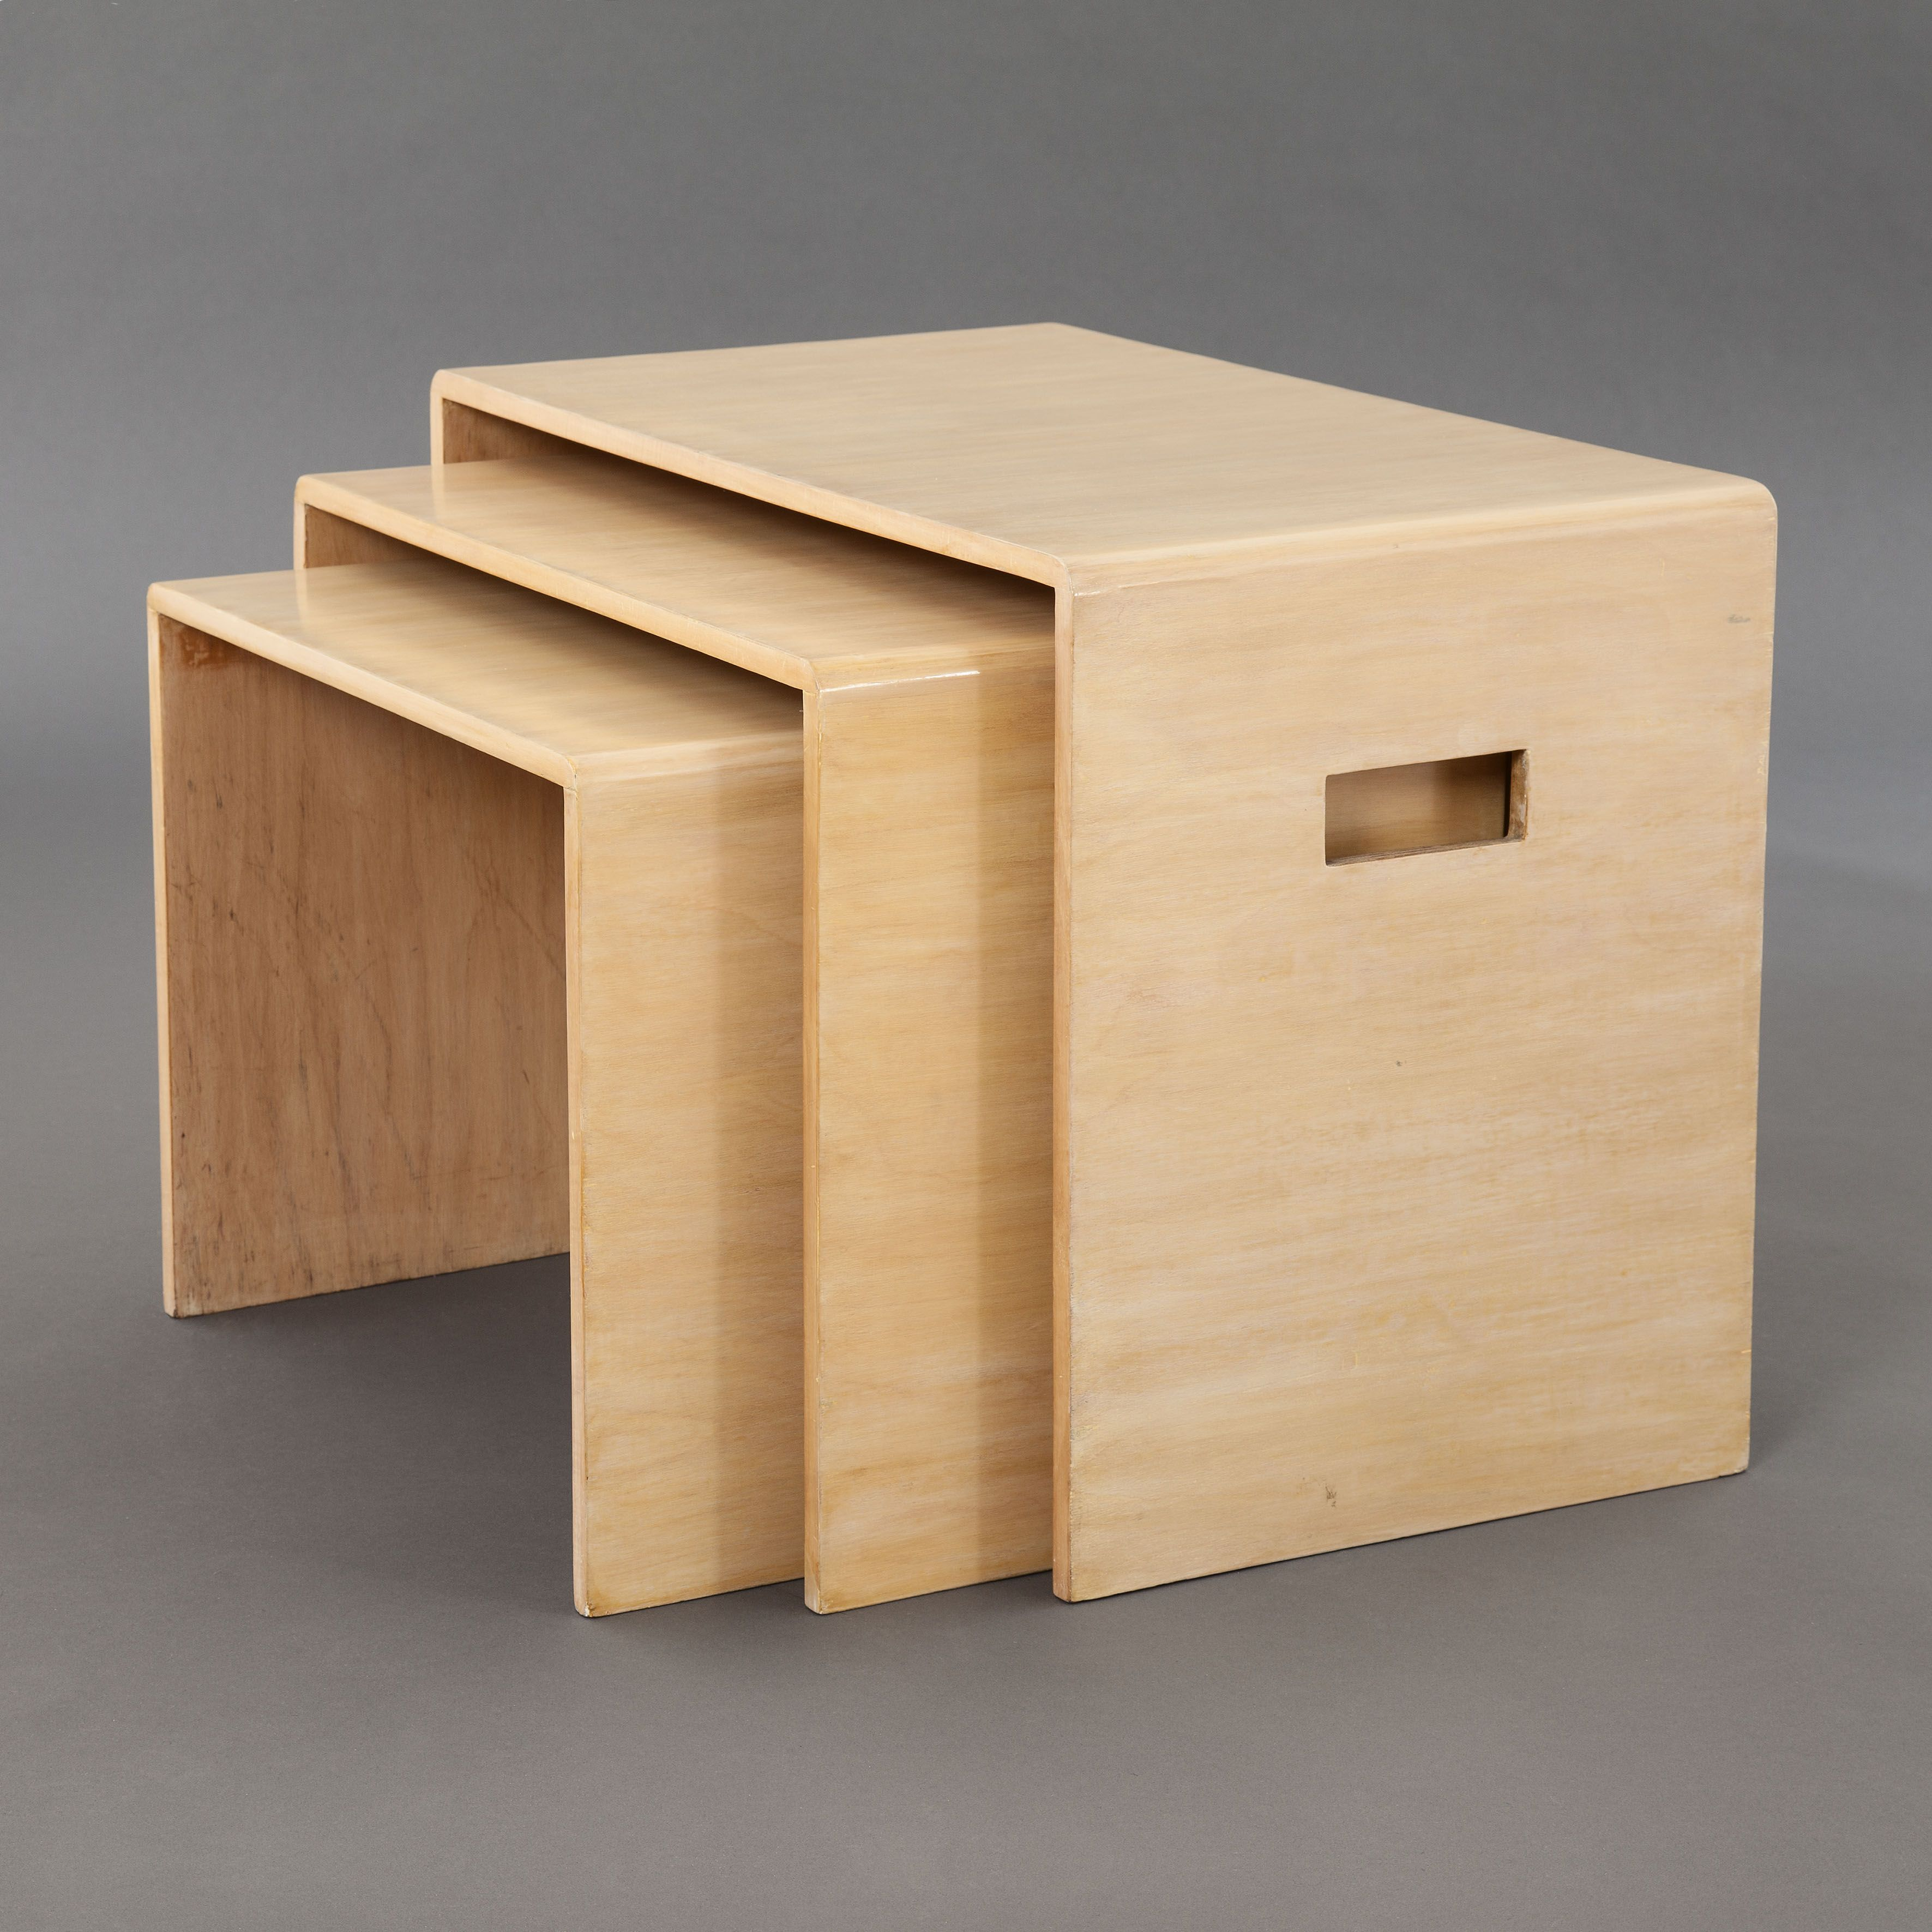 Gerald Summers; Birch Plywood Nesting Tables For Makers Of Simple Furniture,  1933.